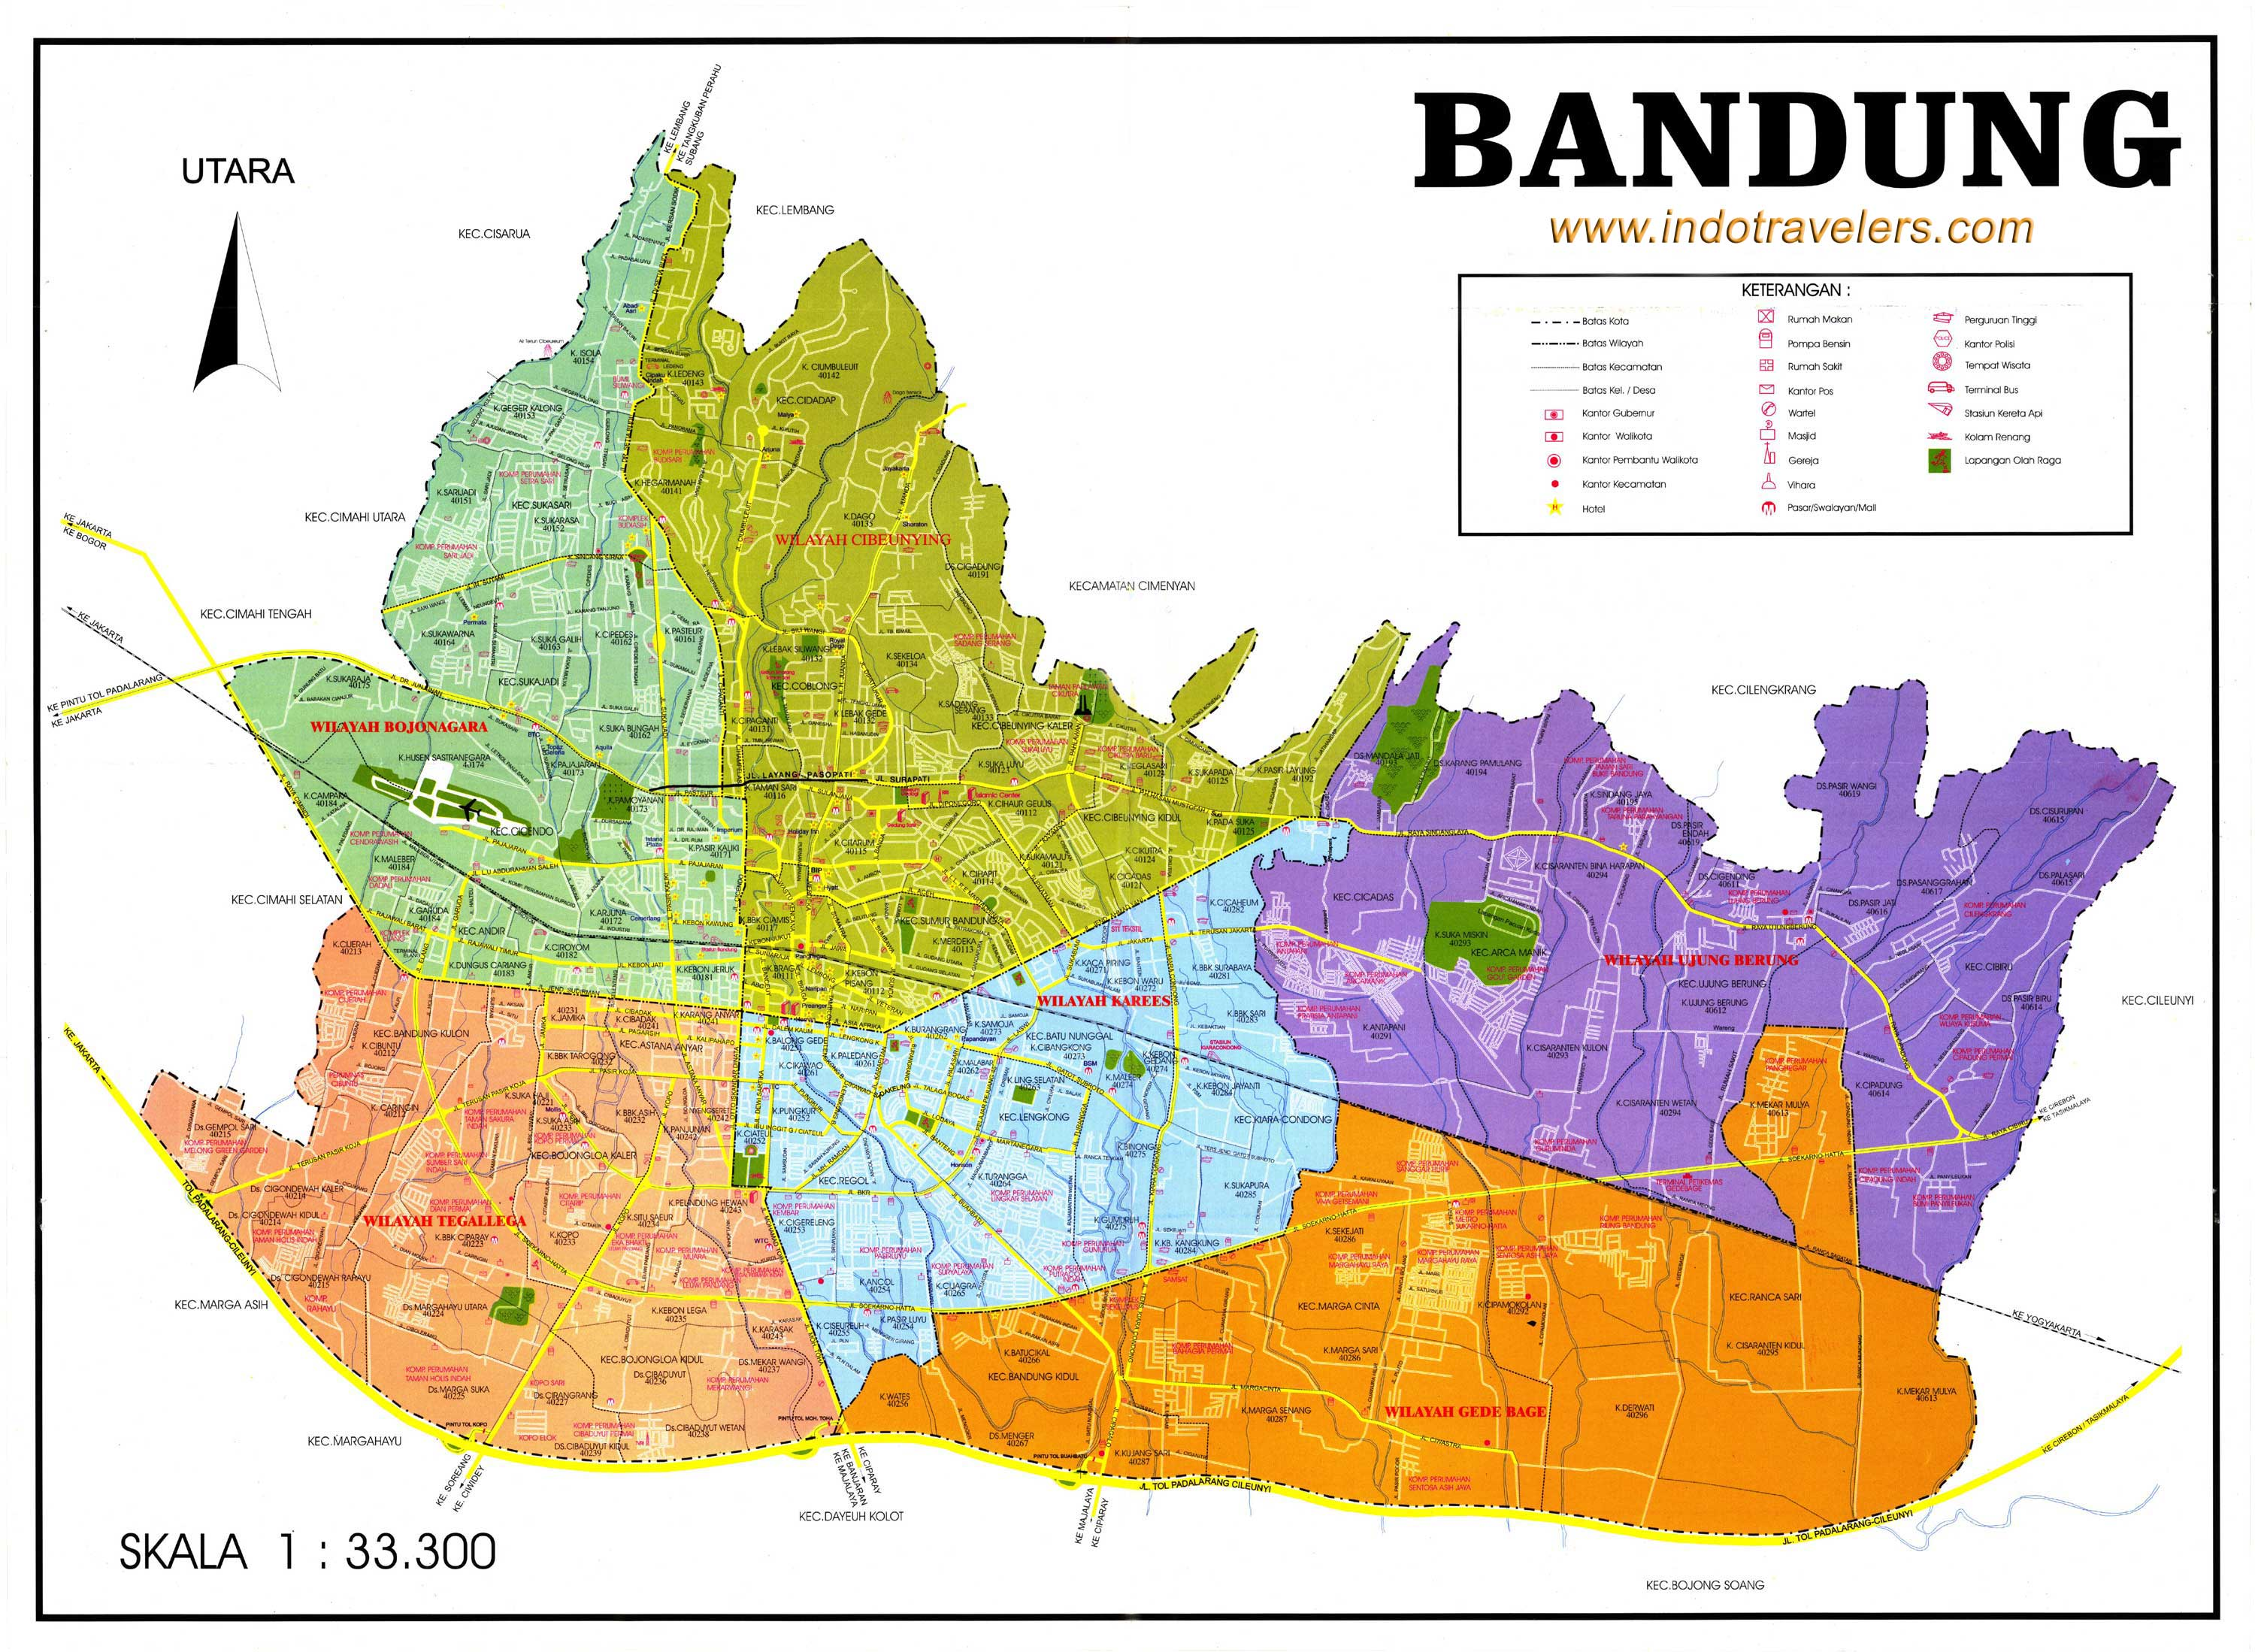 Large Bandung Maps for Free Download and Print HighResolution and